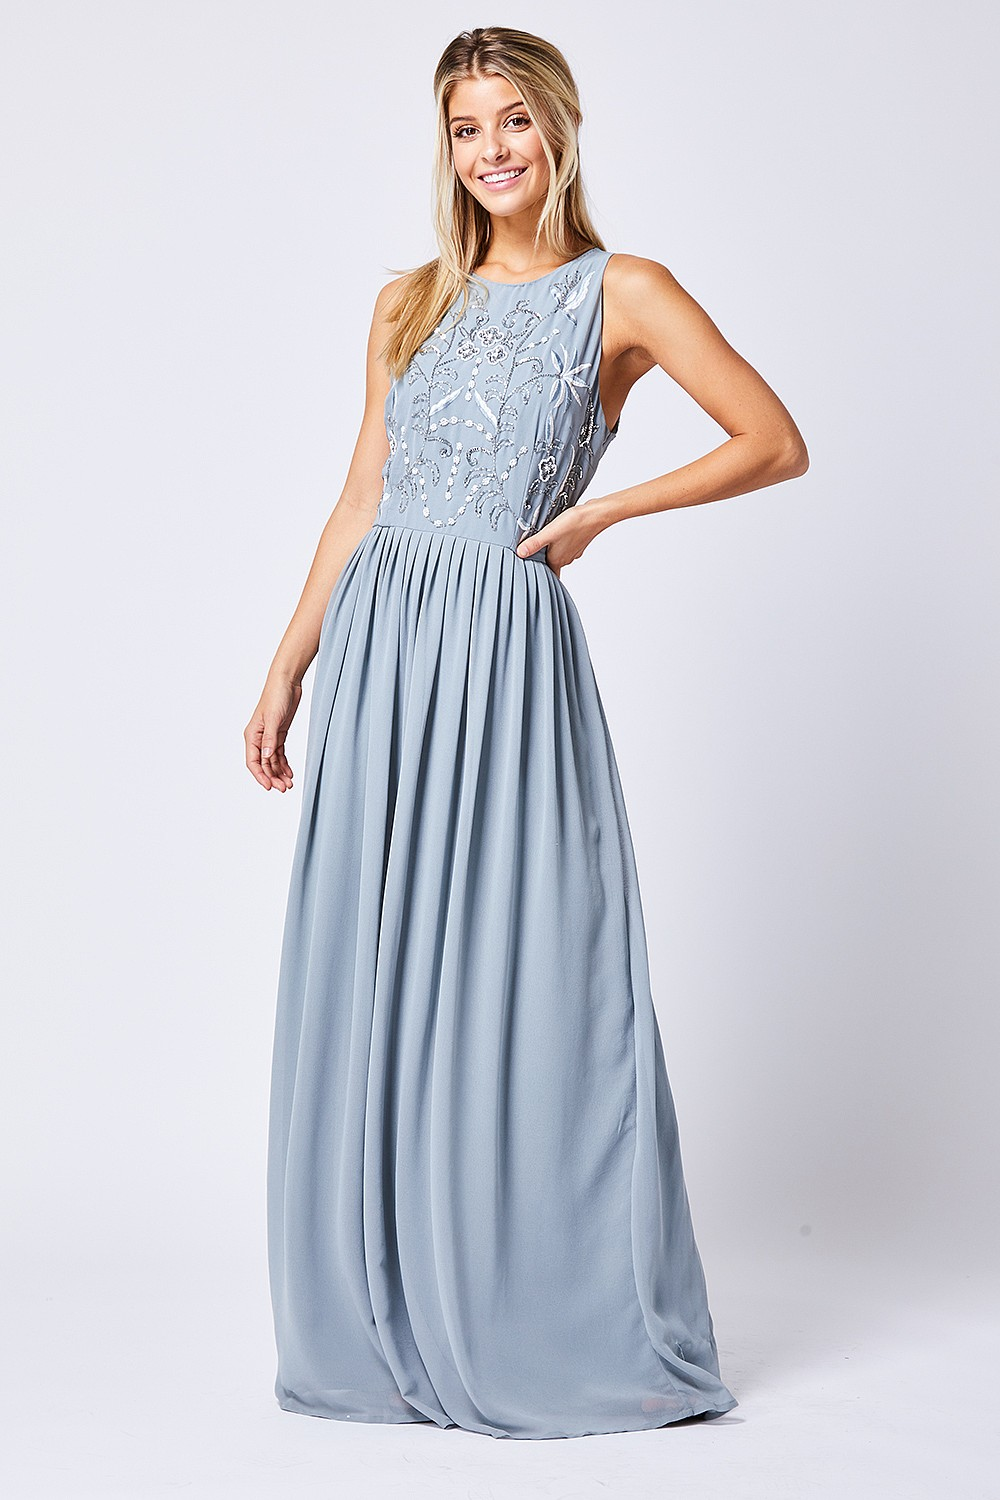 50b5b8785b4c8 Embellished Sleeveless Grey Maxi Dress